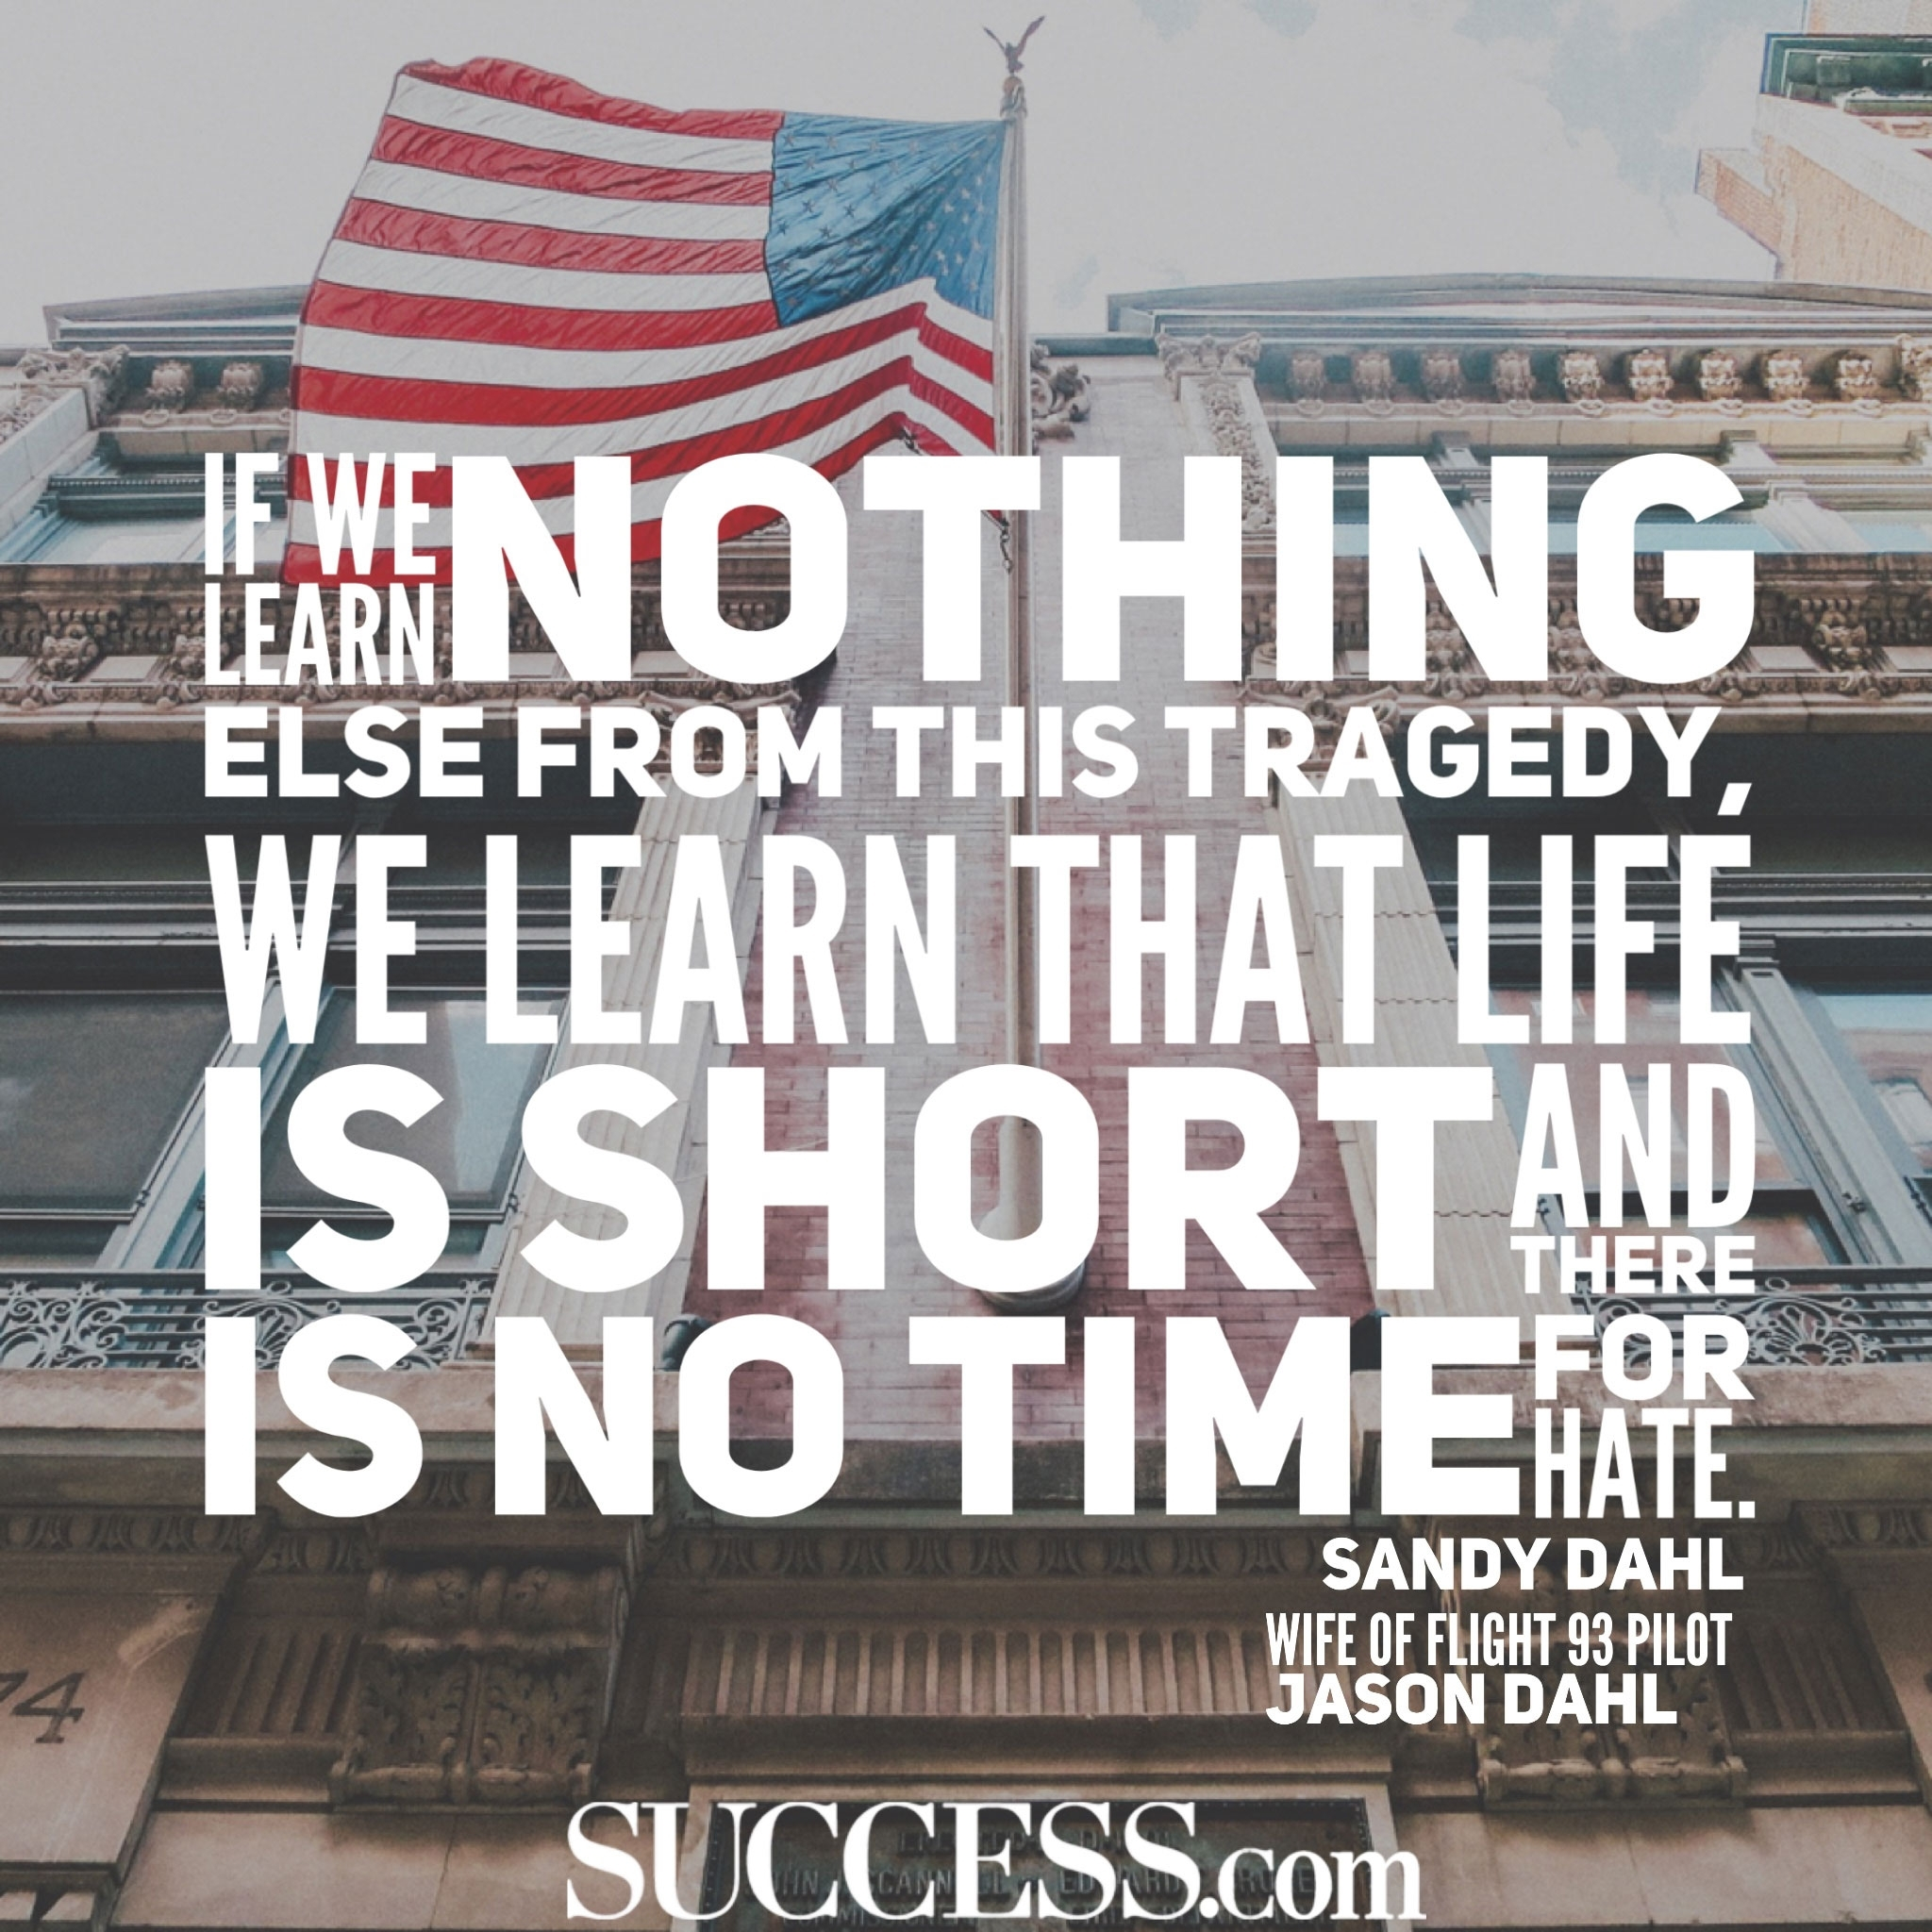 13 Thoughtful Quotes To Remember 9/11 | Success